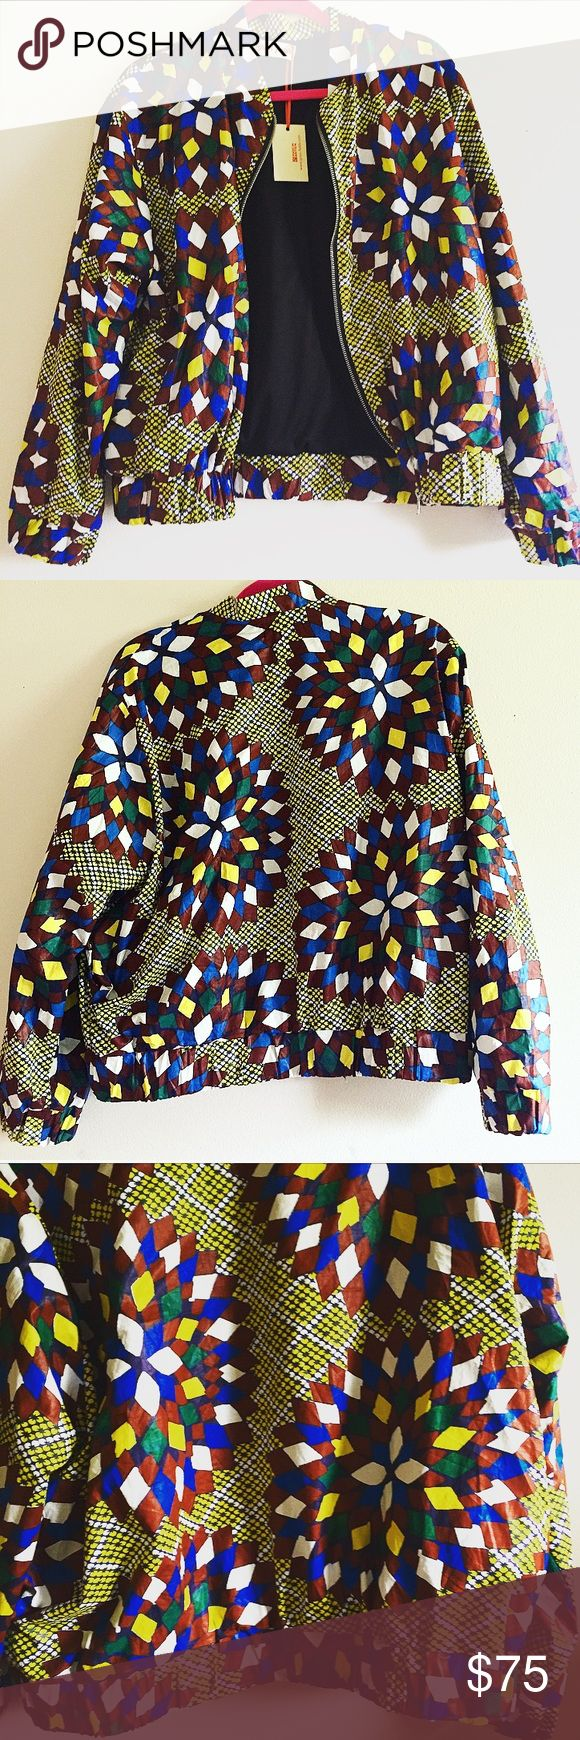 Custom Made African  Print Bomber jacket L African ethnic pattern print bomber jacket / custom made / size L / zip up front / made in Britain / perfect for chilly spring / summer nights Jackets & Coats